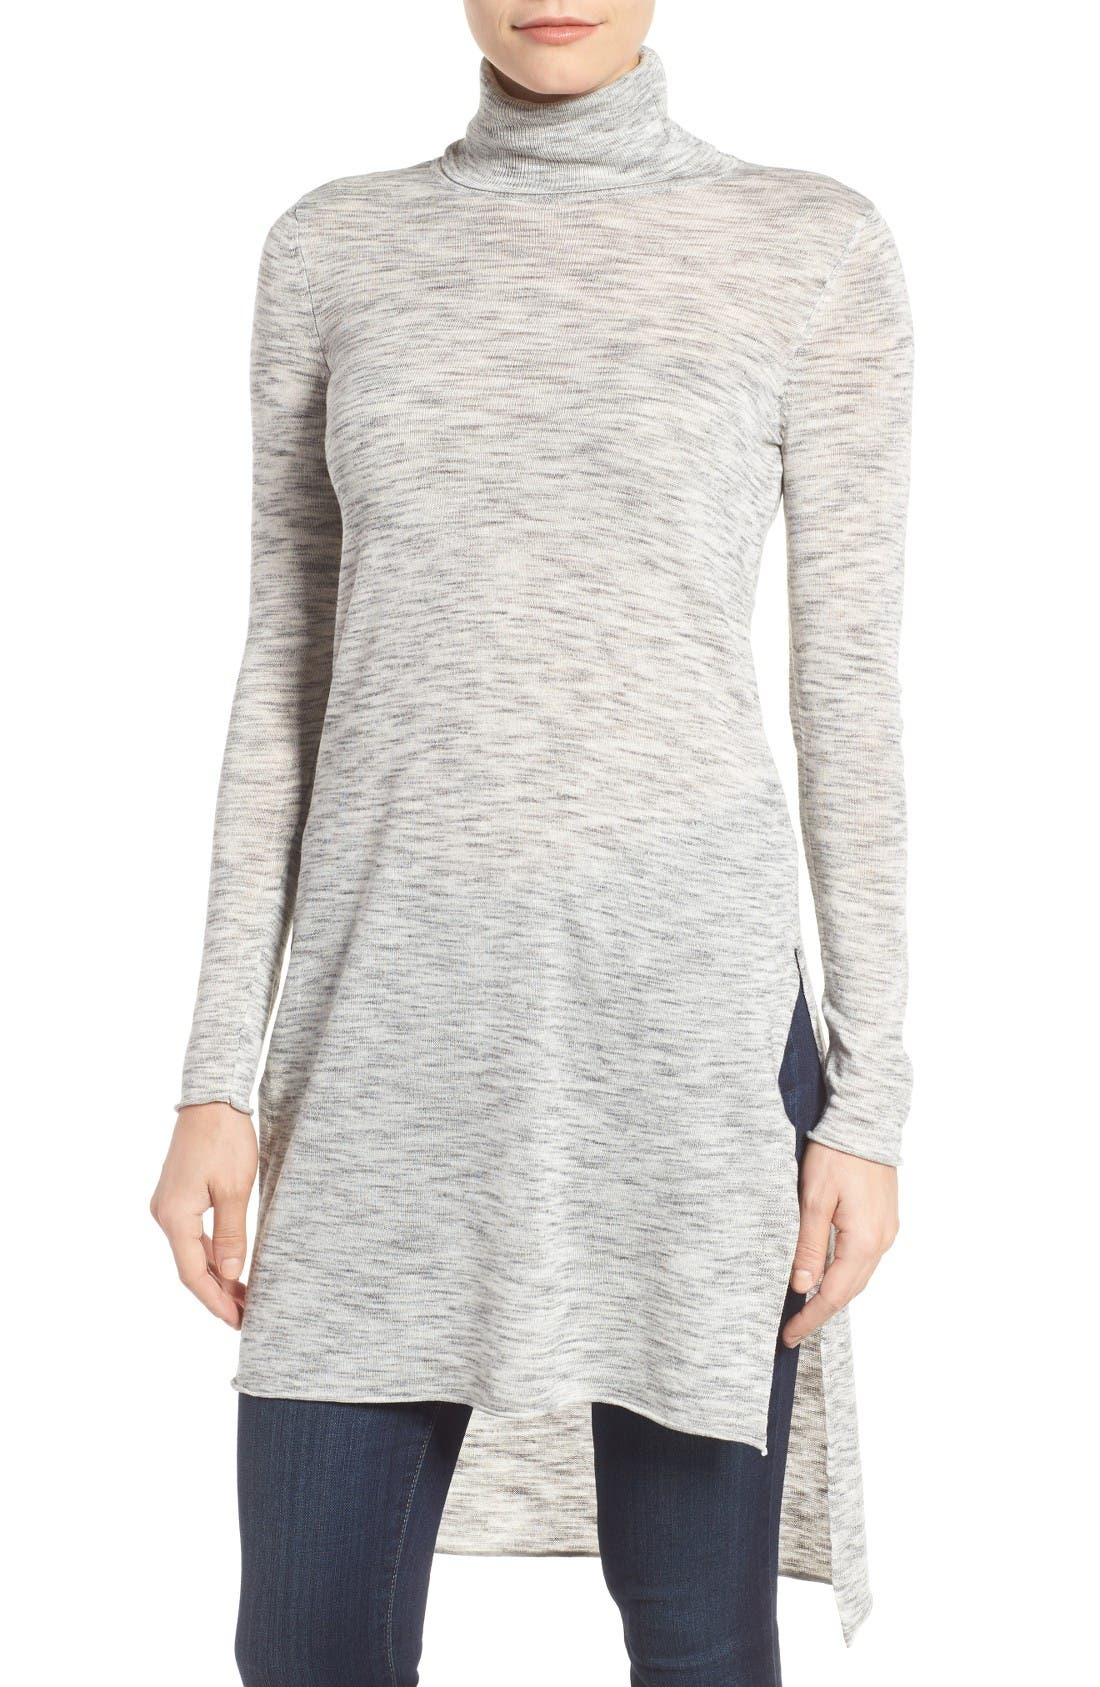 Alternate Image 1 Selected - Dex Turtleneck Tunic Sweater